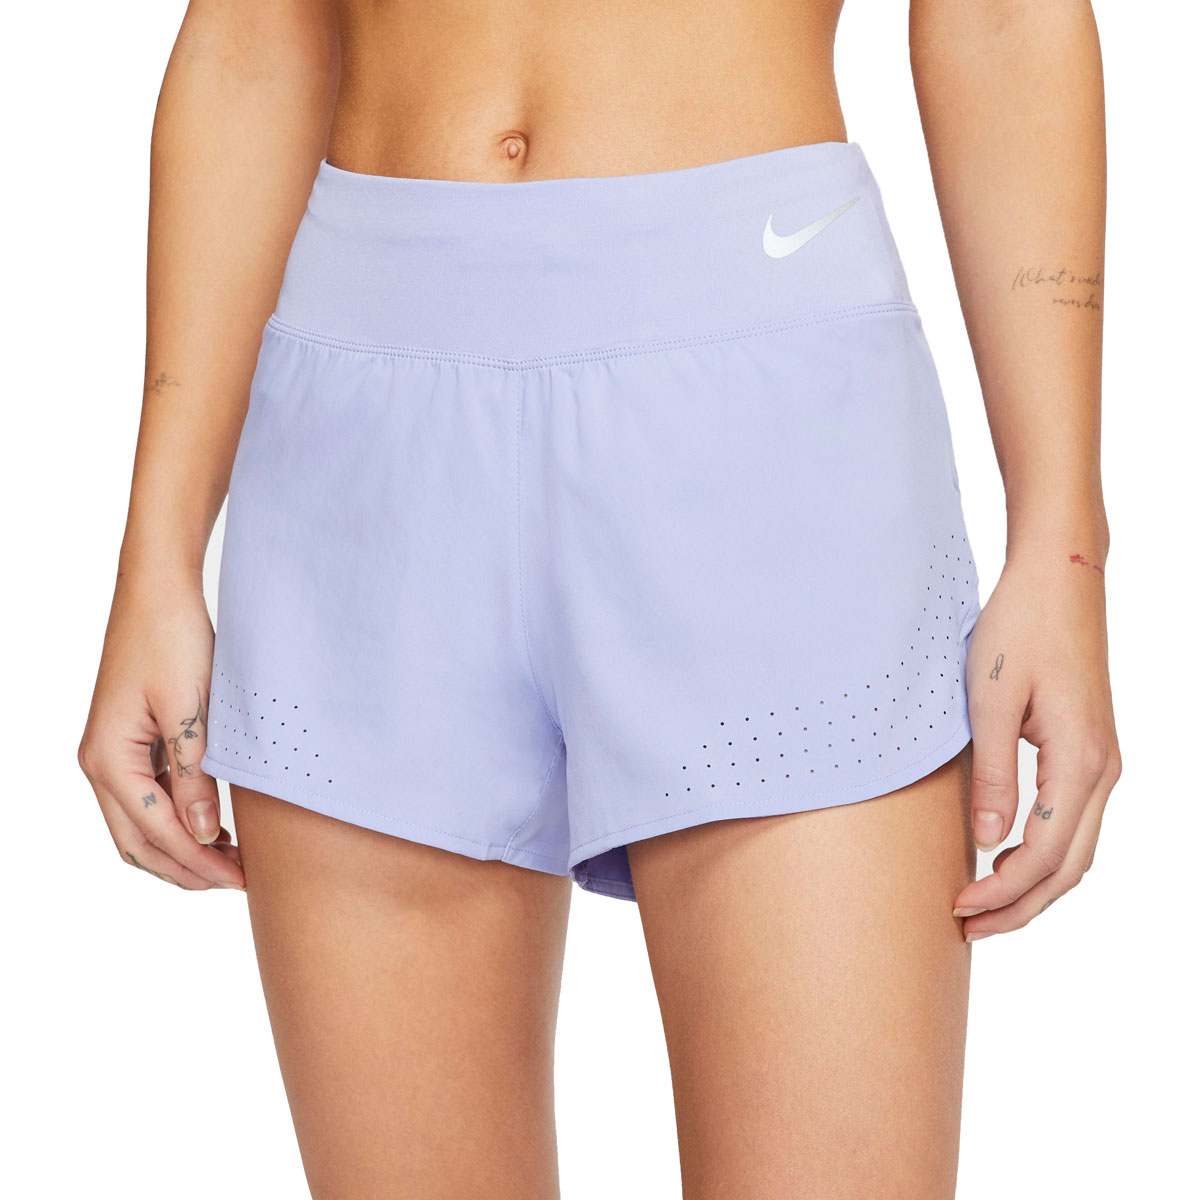 "Women's Nike Eclipse 3"" Running Shorts - Color: Light Thistle/Reflective Silver - Size: XS, Light Thistle/Reflective Silver, large, image 1"